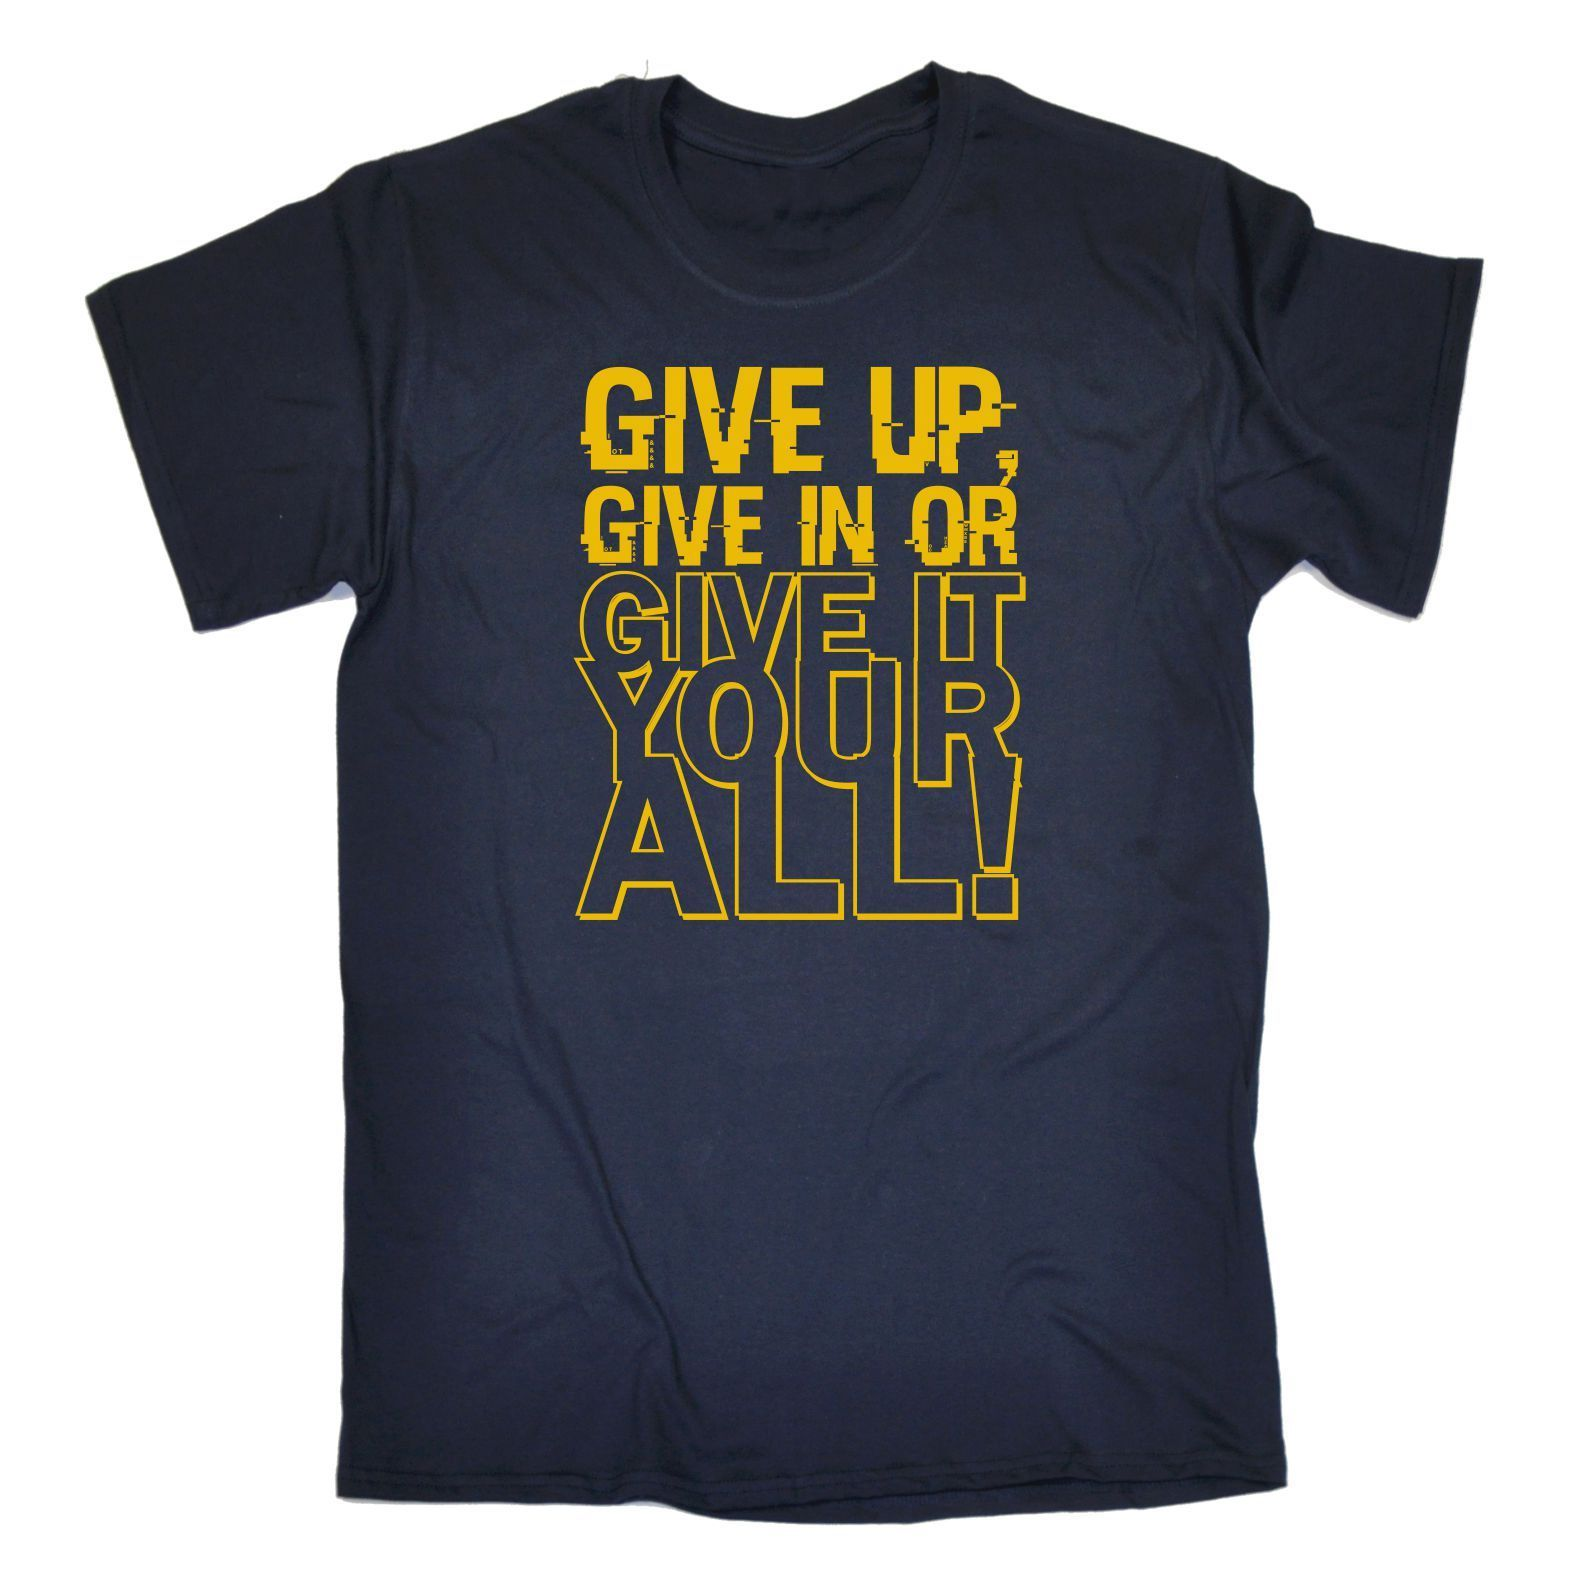 Give Up Give In or Give It Your All MENS T-SHIRT Tee Funny Birthday Motivation 100% Cotton Short Sleeve O-Neck Top Tee T Shirt image